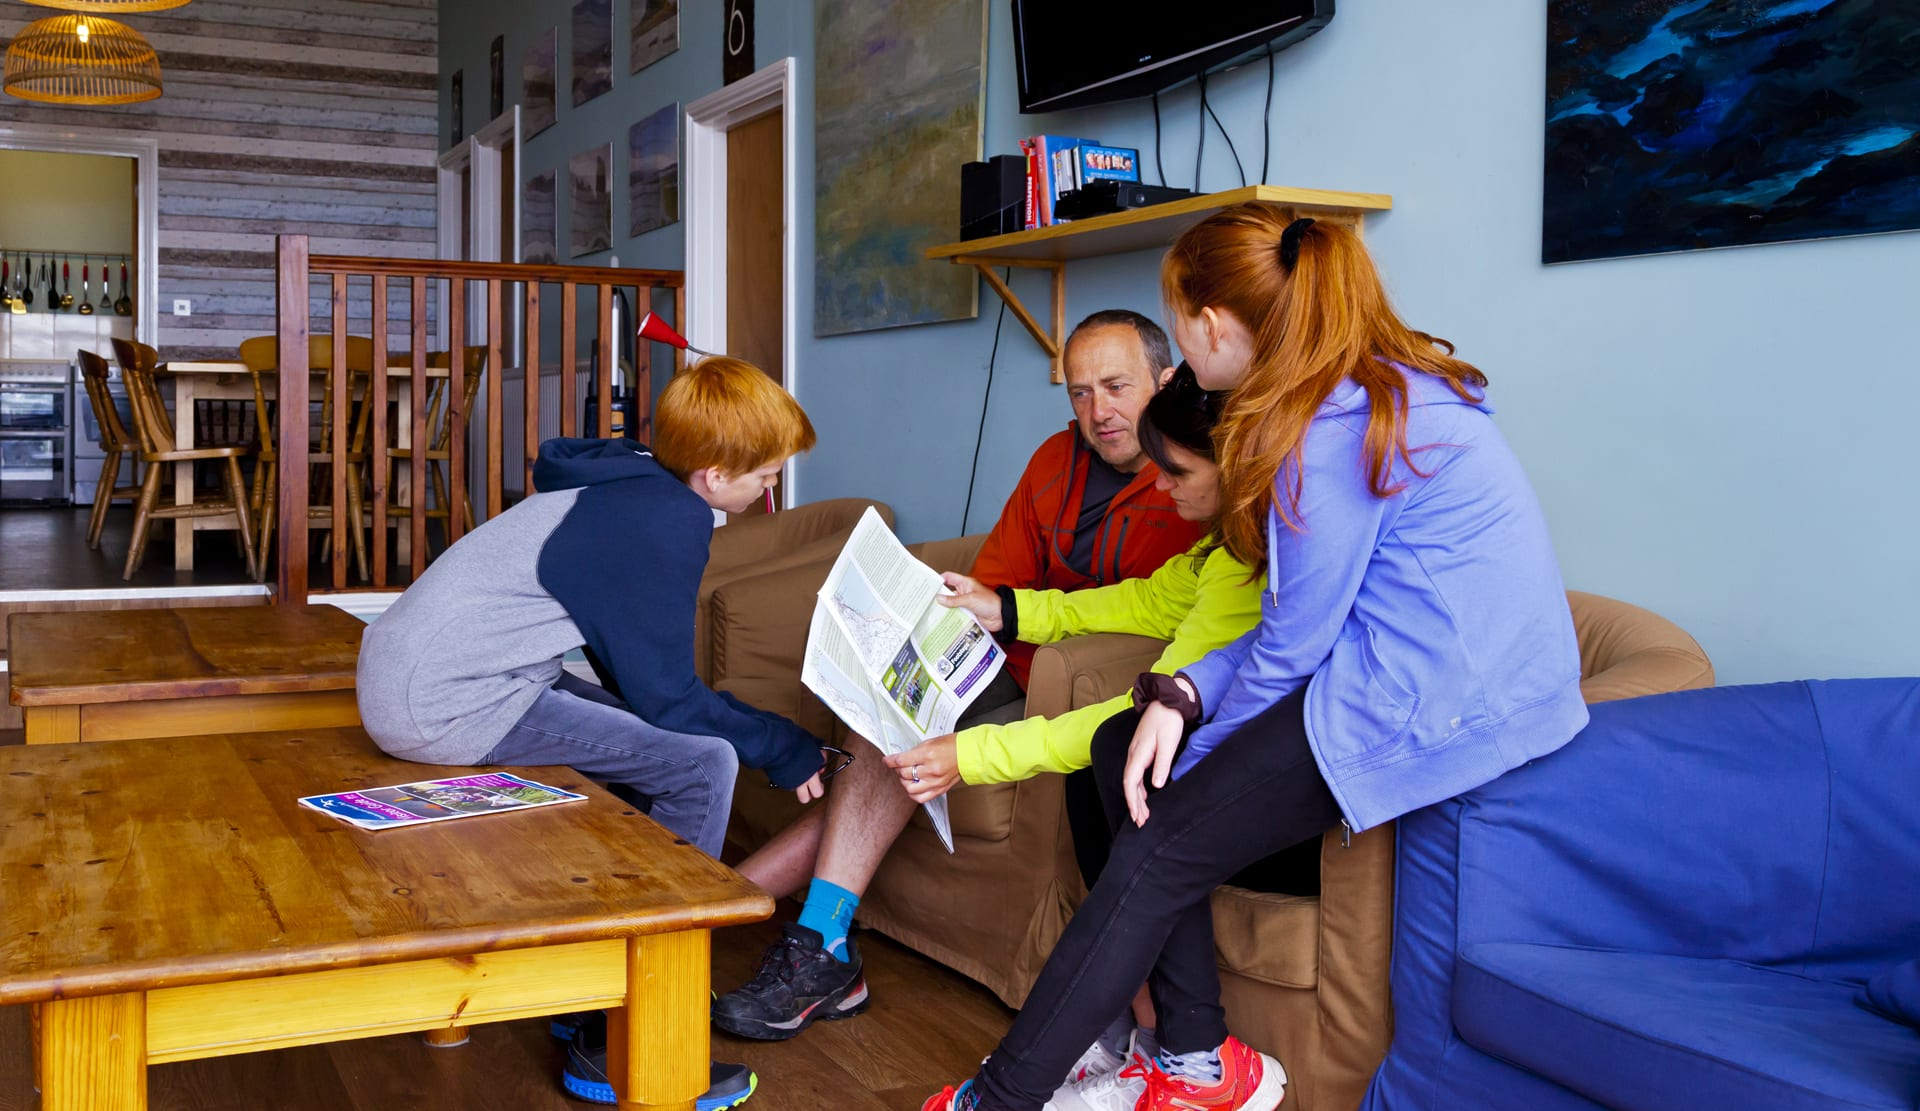 People reviewing map in hostel reopening 2021